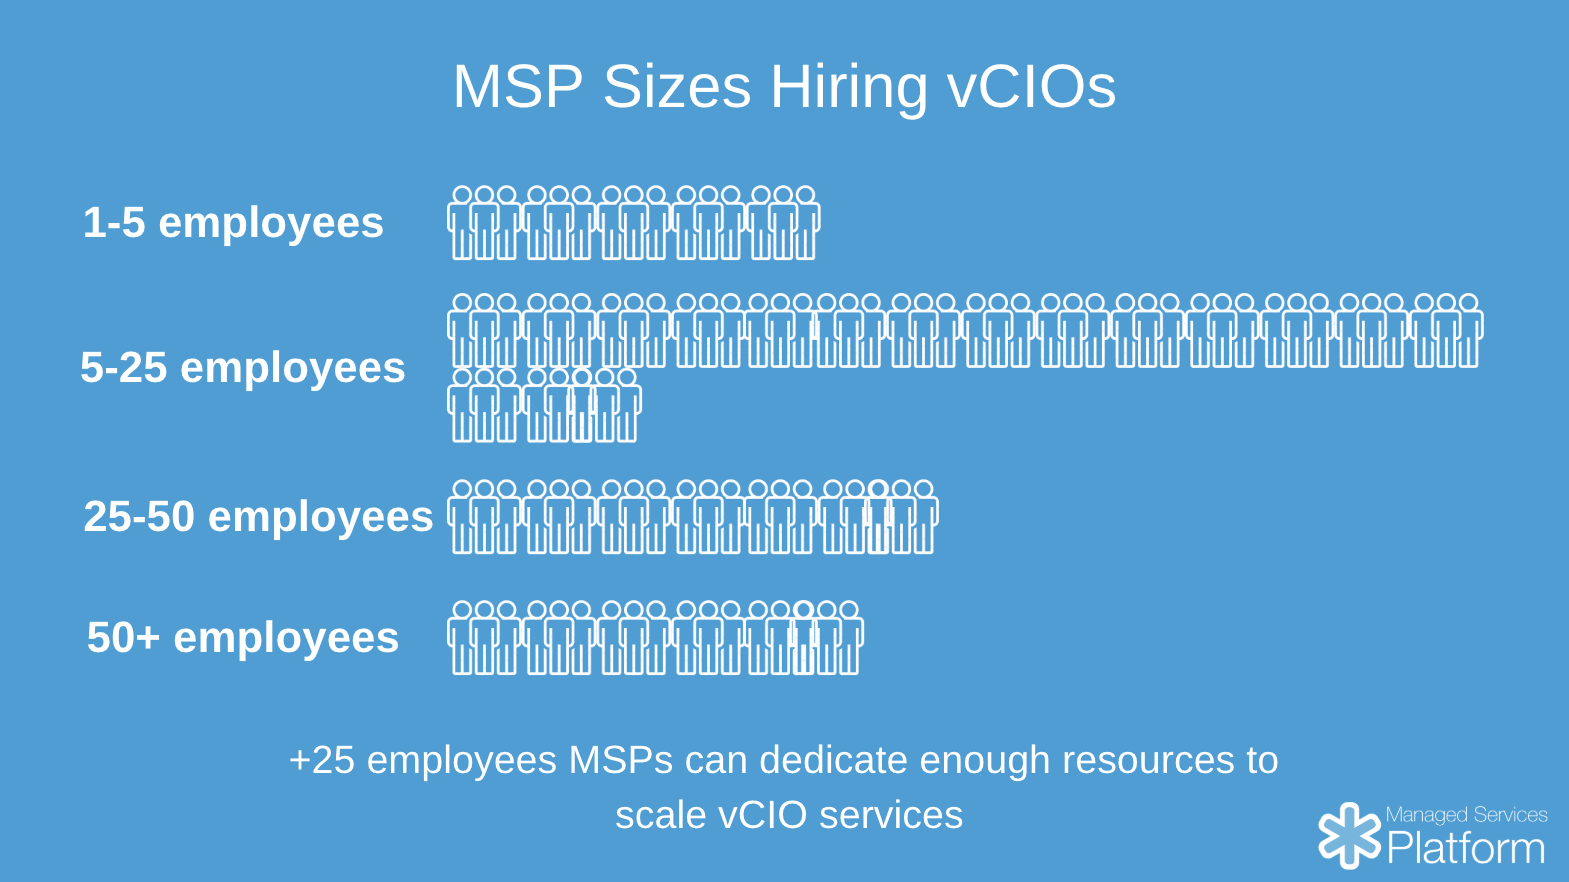 msp-sizes-hiring-vcios